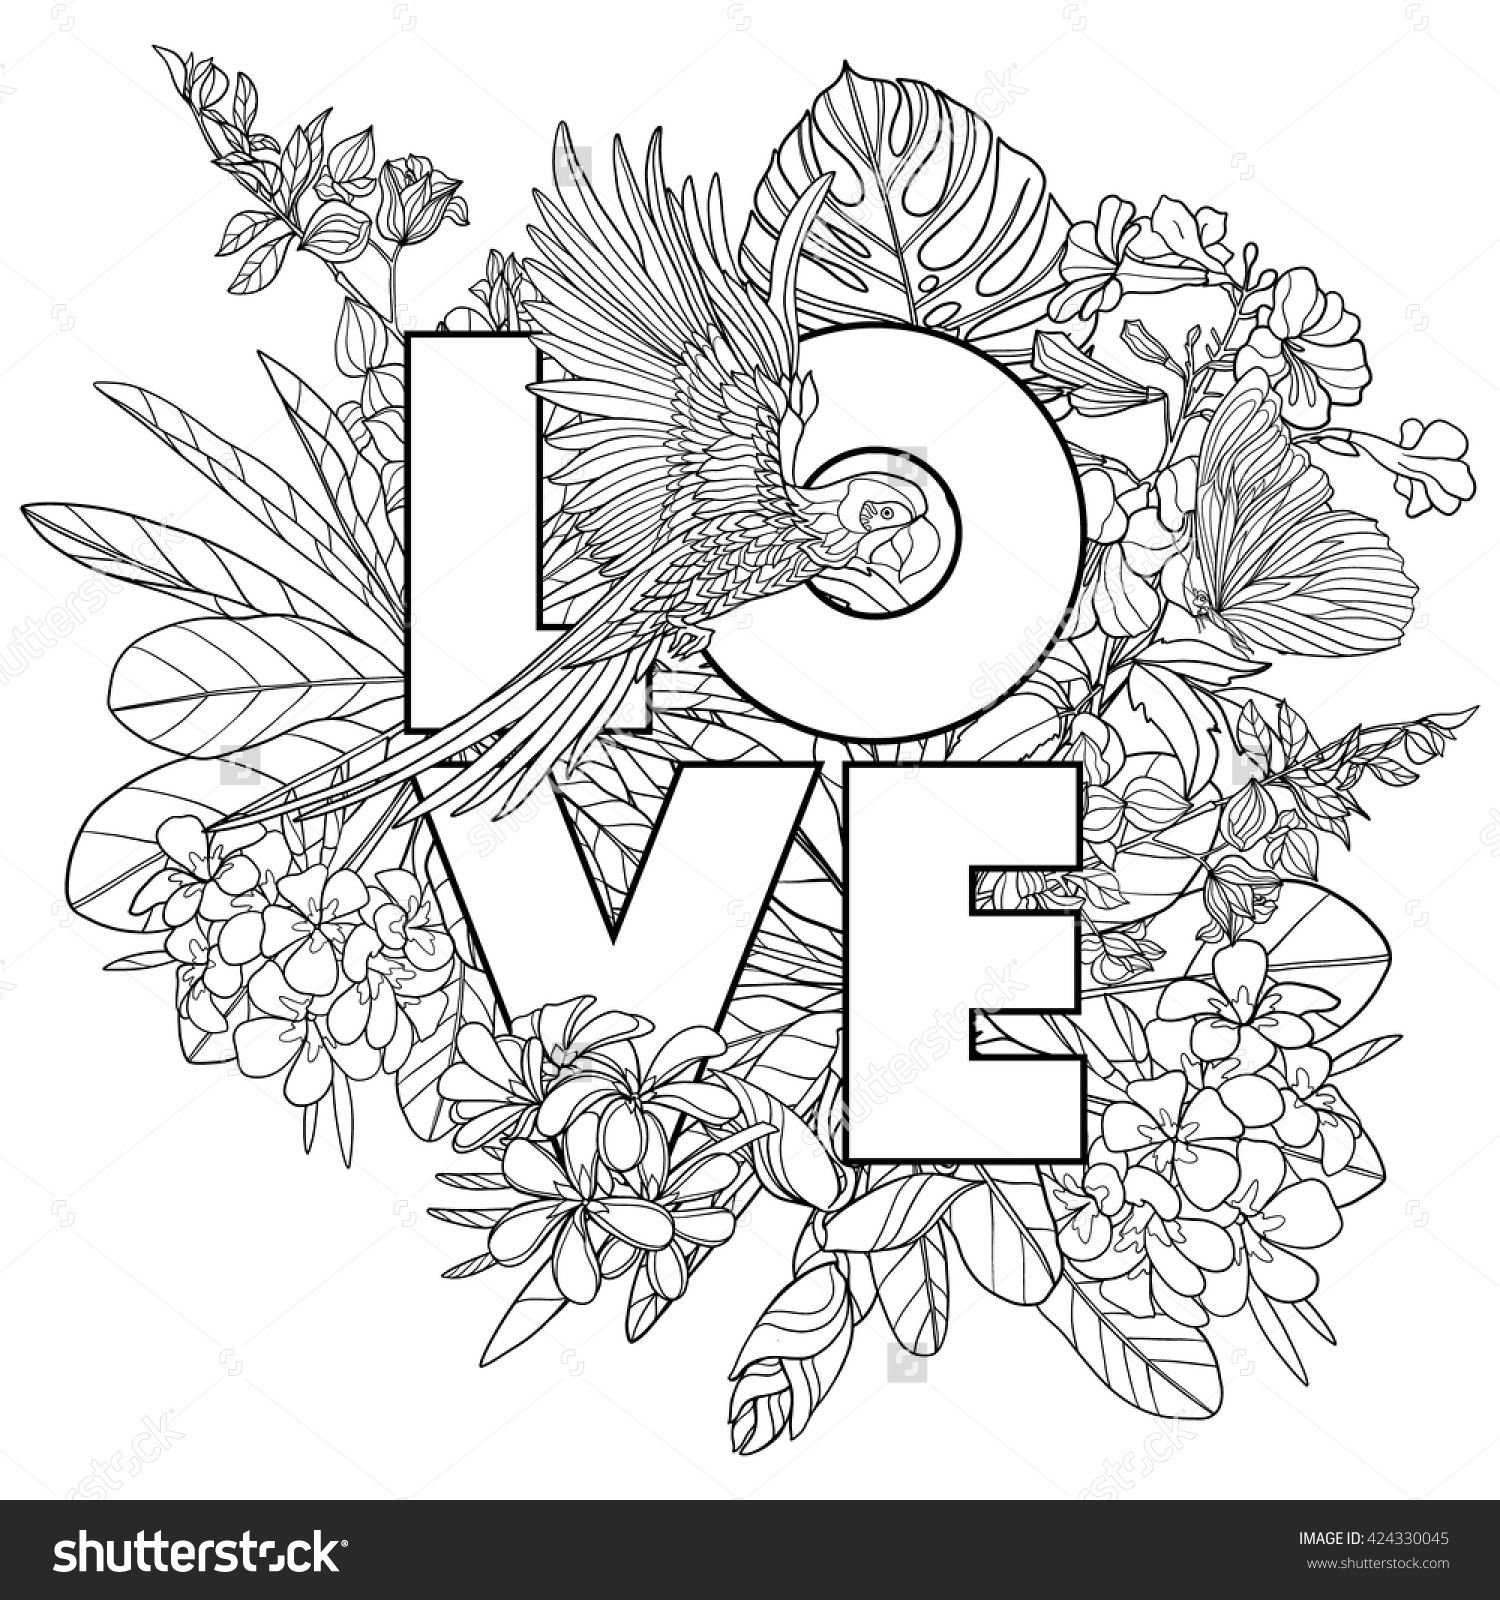 Coloring Page With Word Love And Tropical Birds Plants Outline Vector Illustration